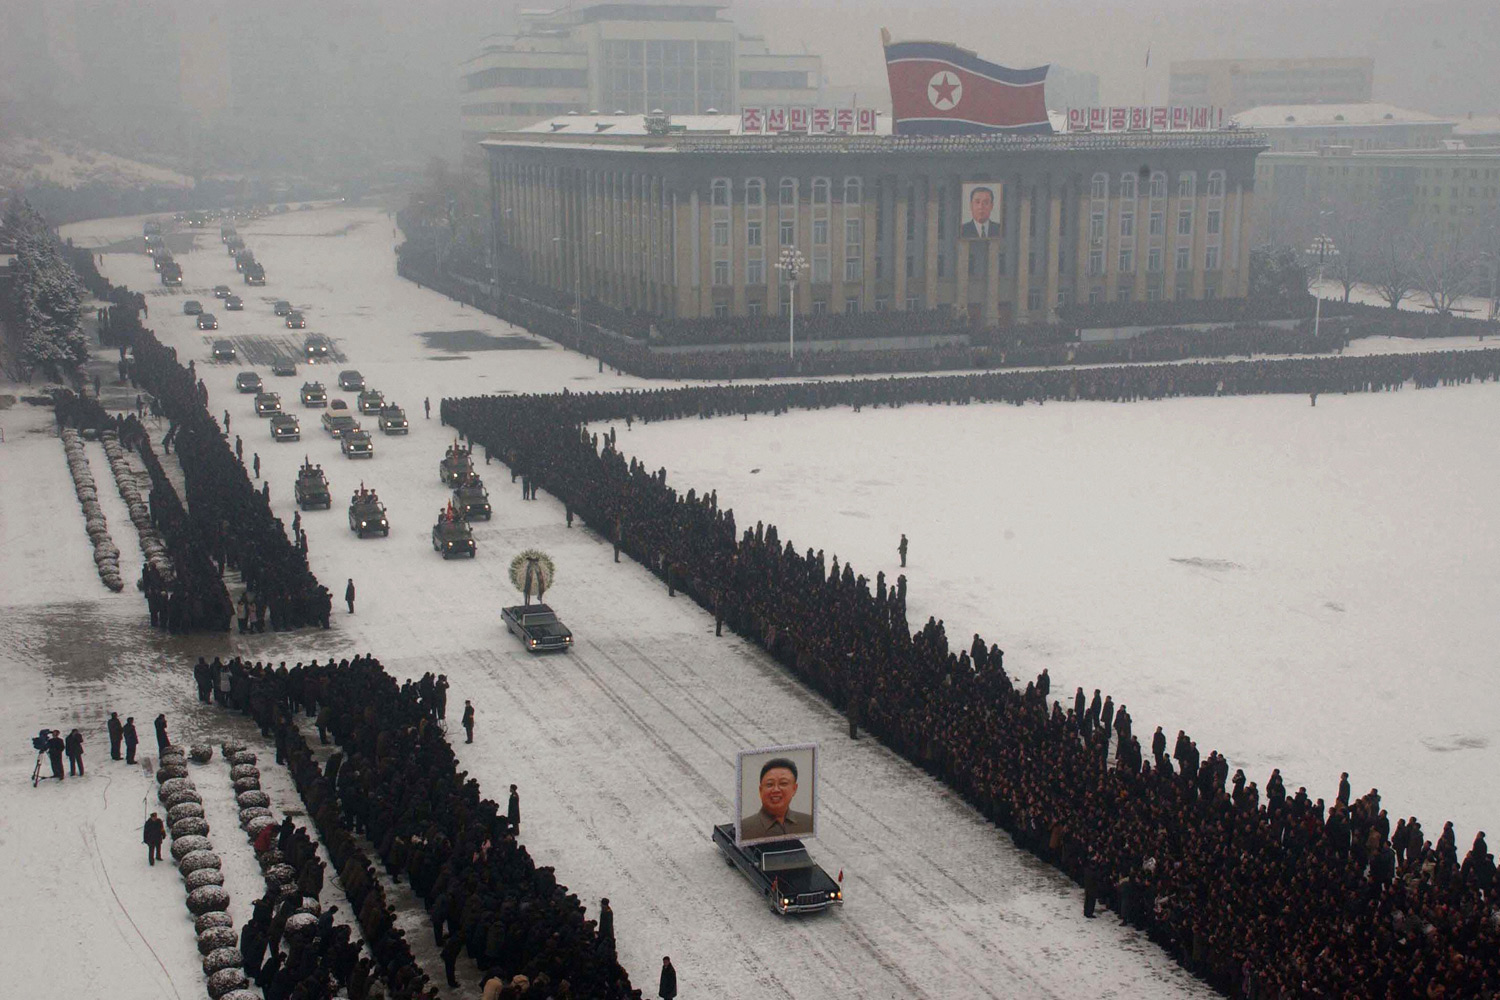 """This is the unmanipulated <a href=""""http://lightbox.time.com/2011/12/30/the-aesthetics-of-a-dictatorship-north-koreas-photoshopped-funeral"""" target=""""_blank"""">photograph</a> from the funeral procession of Kim Jong Il, taken by Kyodo News. an independent Japanese news agency."""